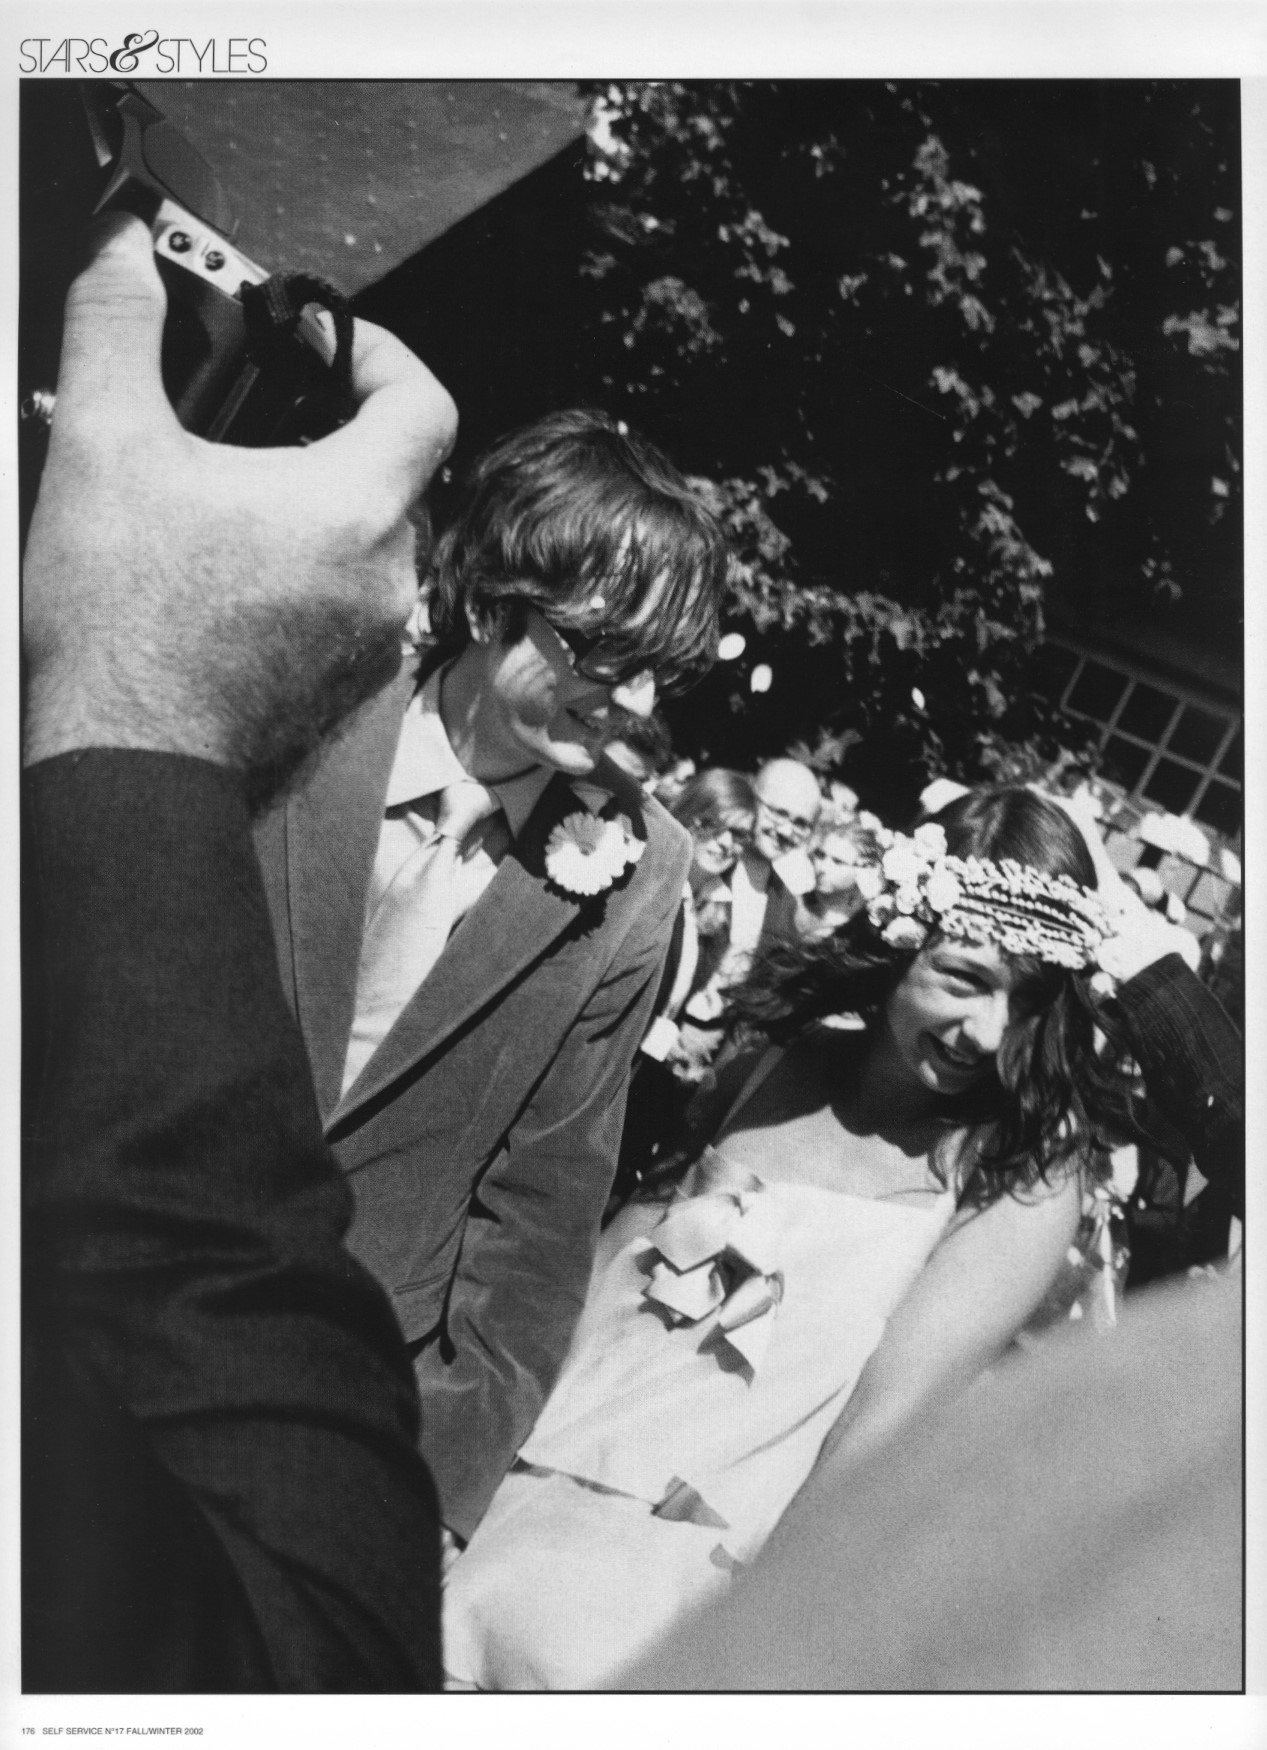 THIS IS HARDCORE | JARVIS COCKER AND CAMILLE BIDAULT-WADDINGTON'S WEDDING | PHOTOGRAPHY GAUTHIER GALLET AND SUZANNE KOLLER | SELF SERVICE N°17 | FALL/WINTER 2002